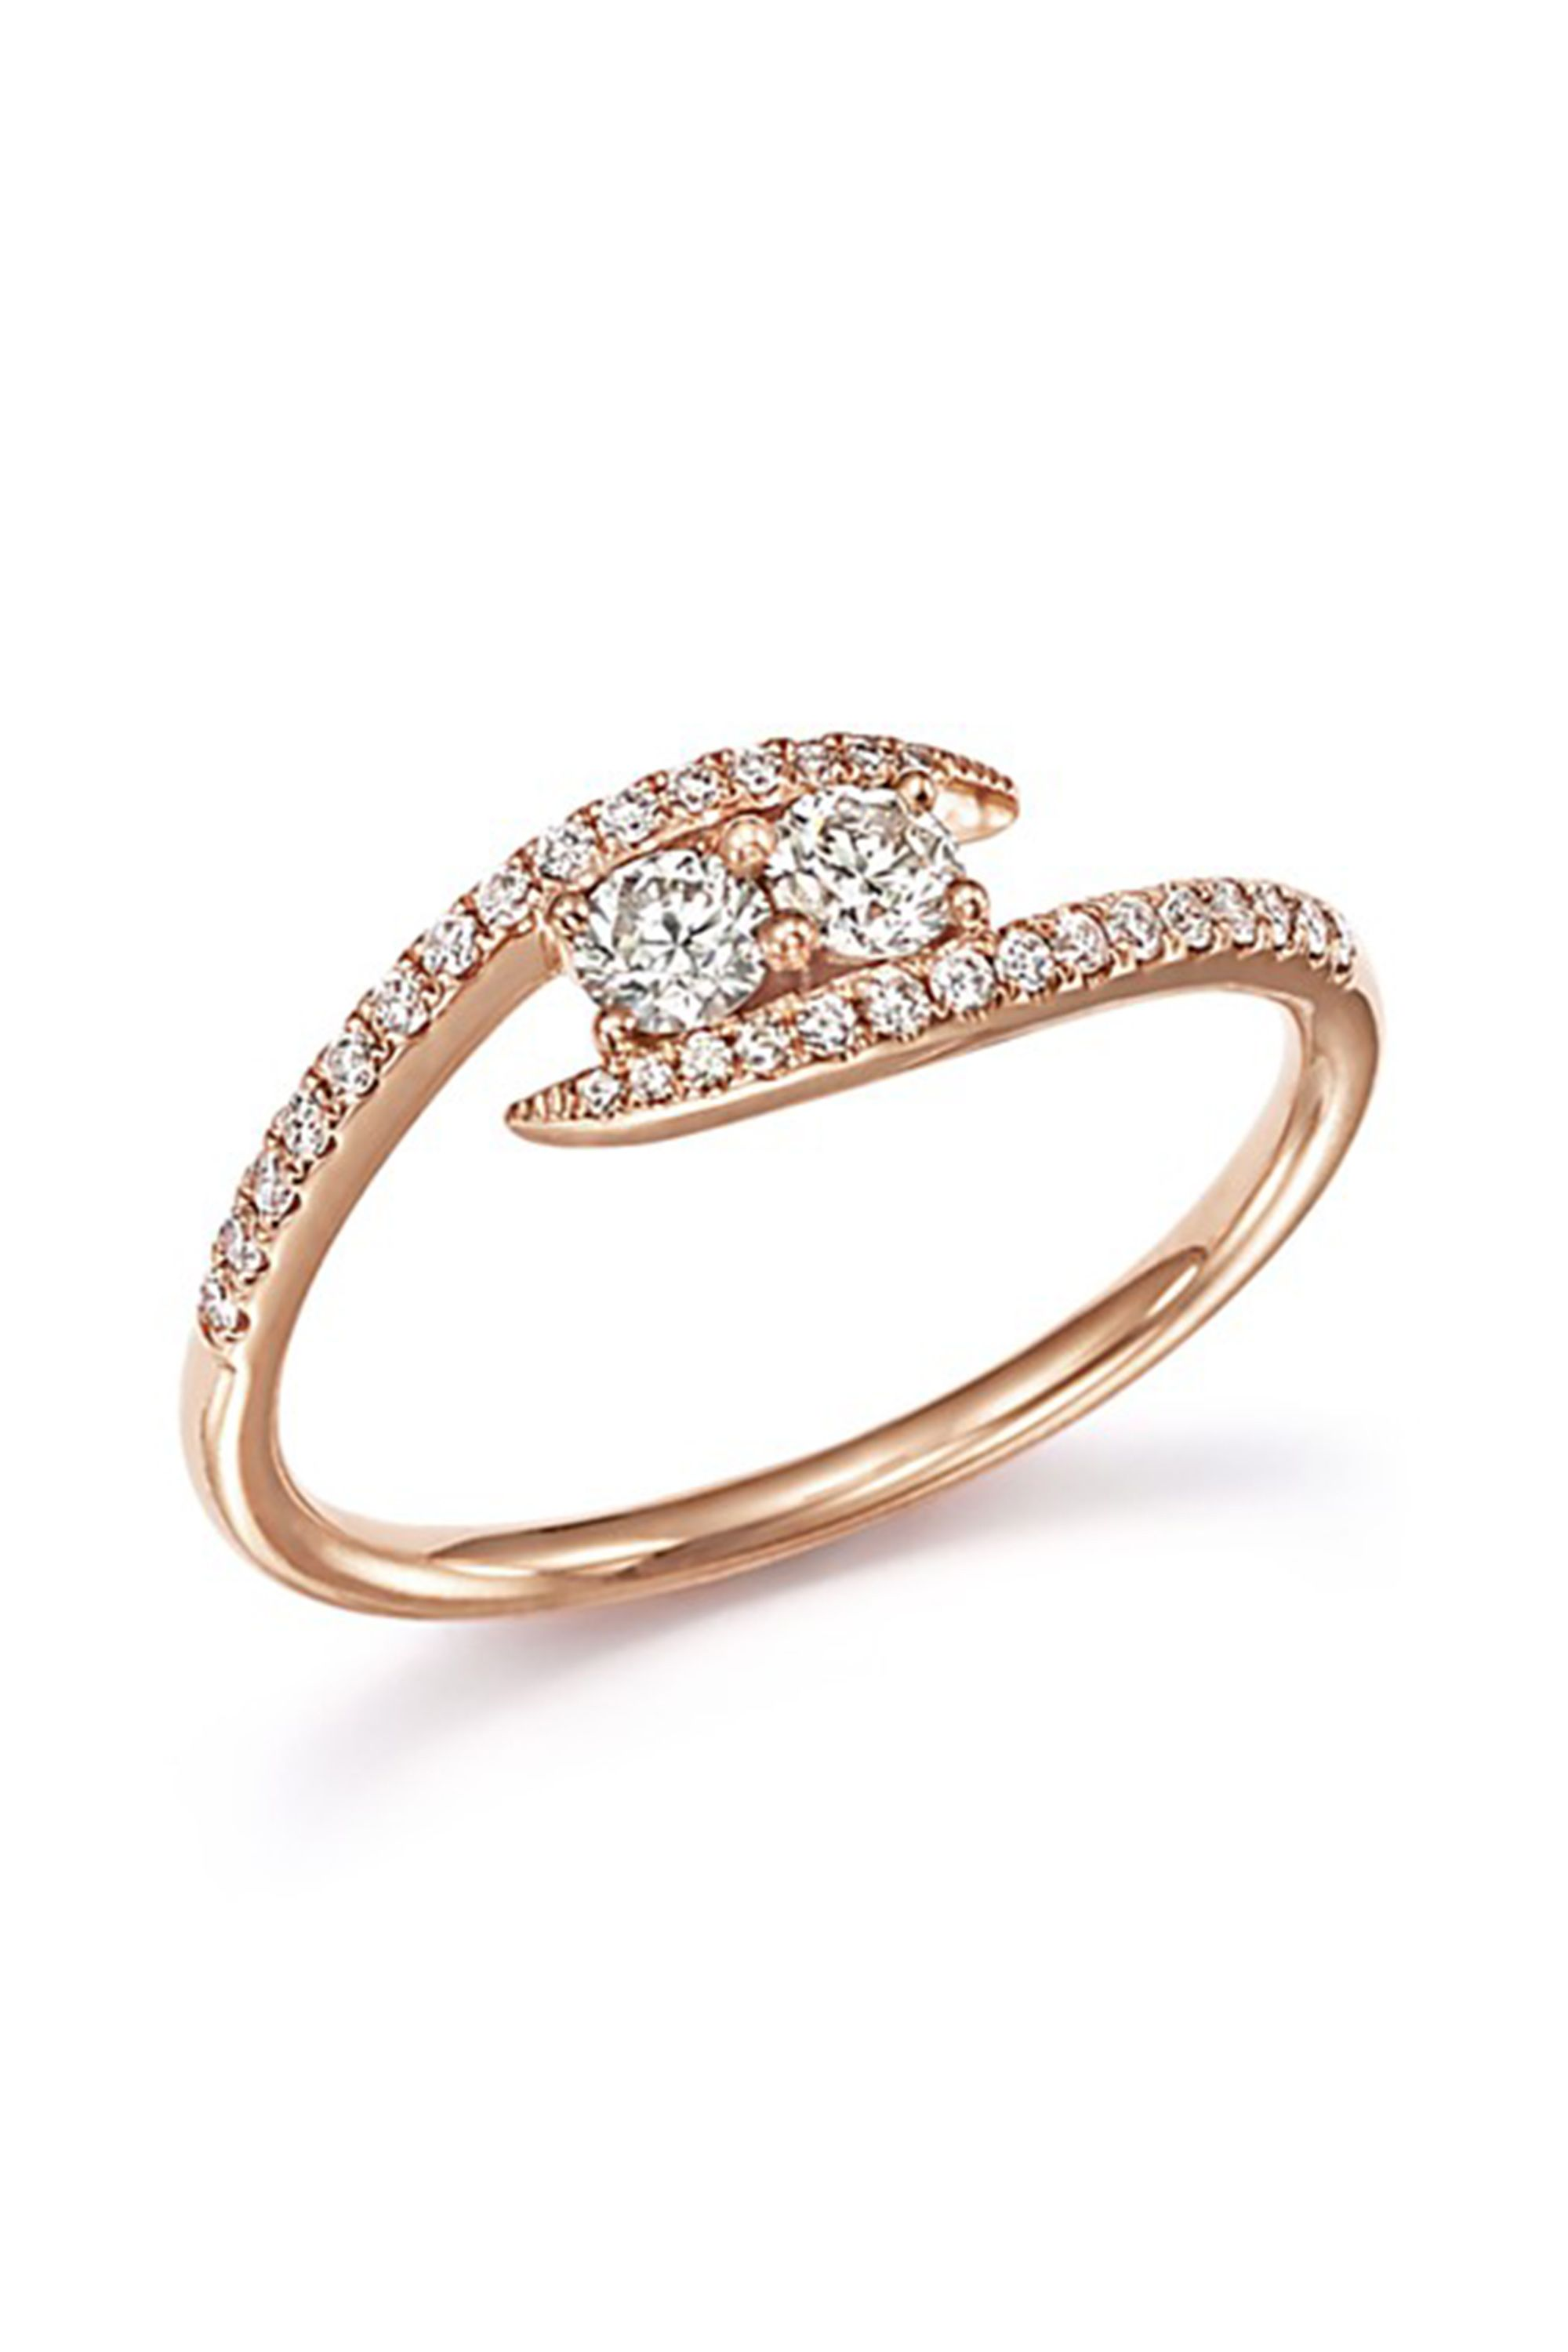 products artemer pepper diamond engagement carat rose ring gold grey with rings and salt